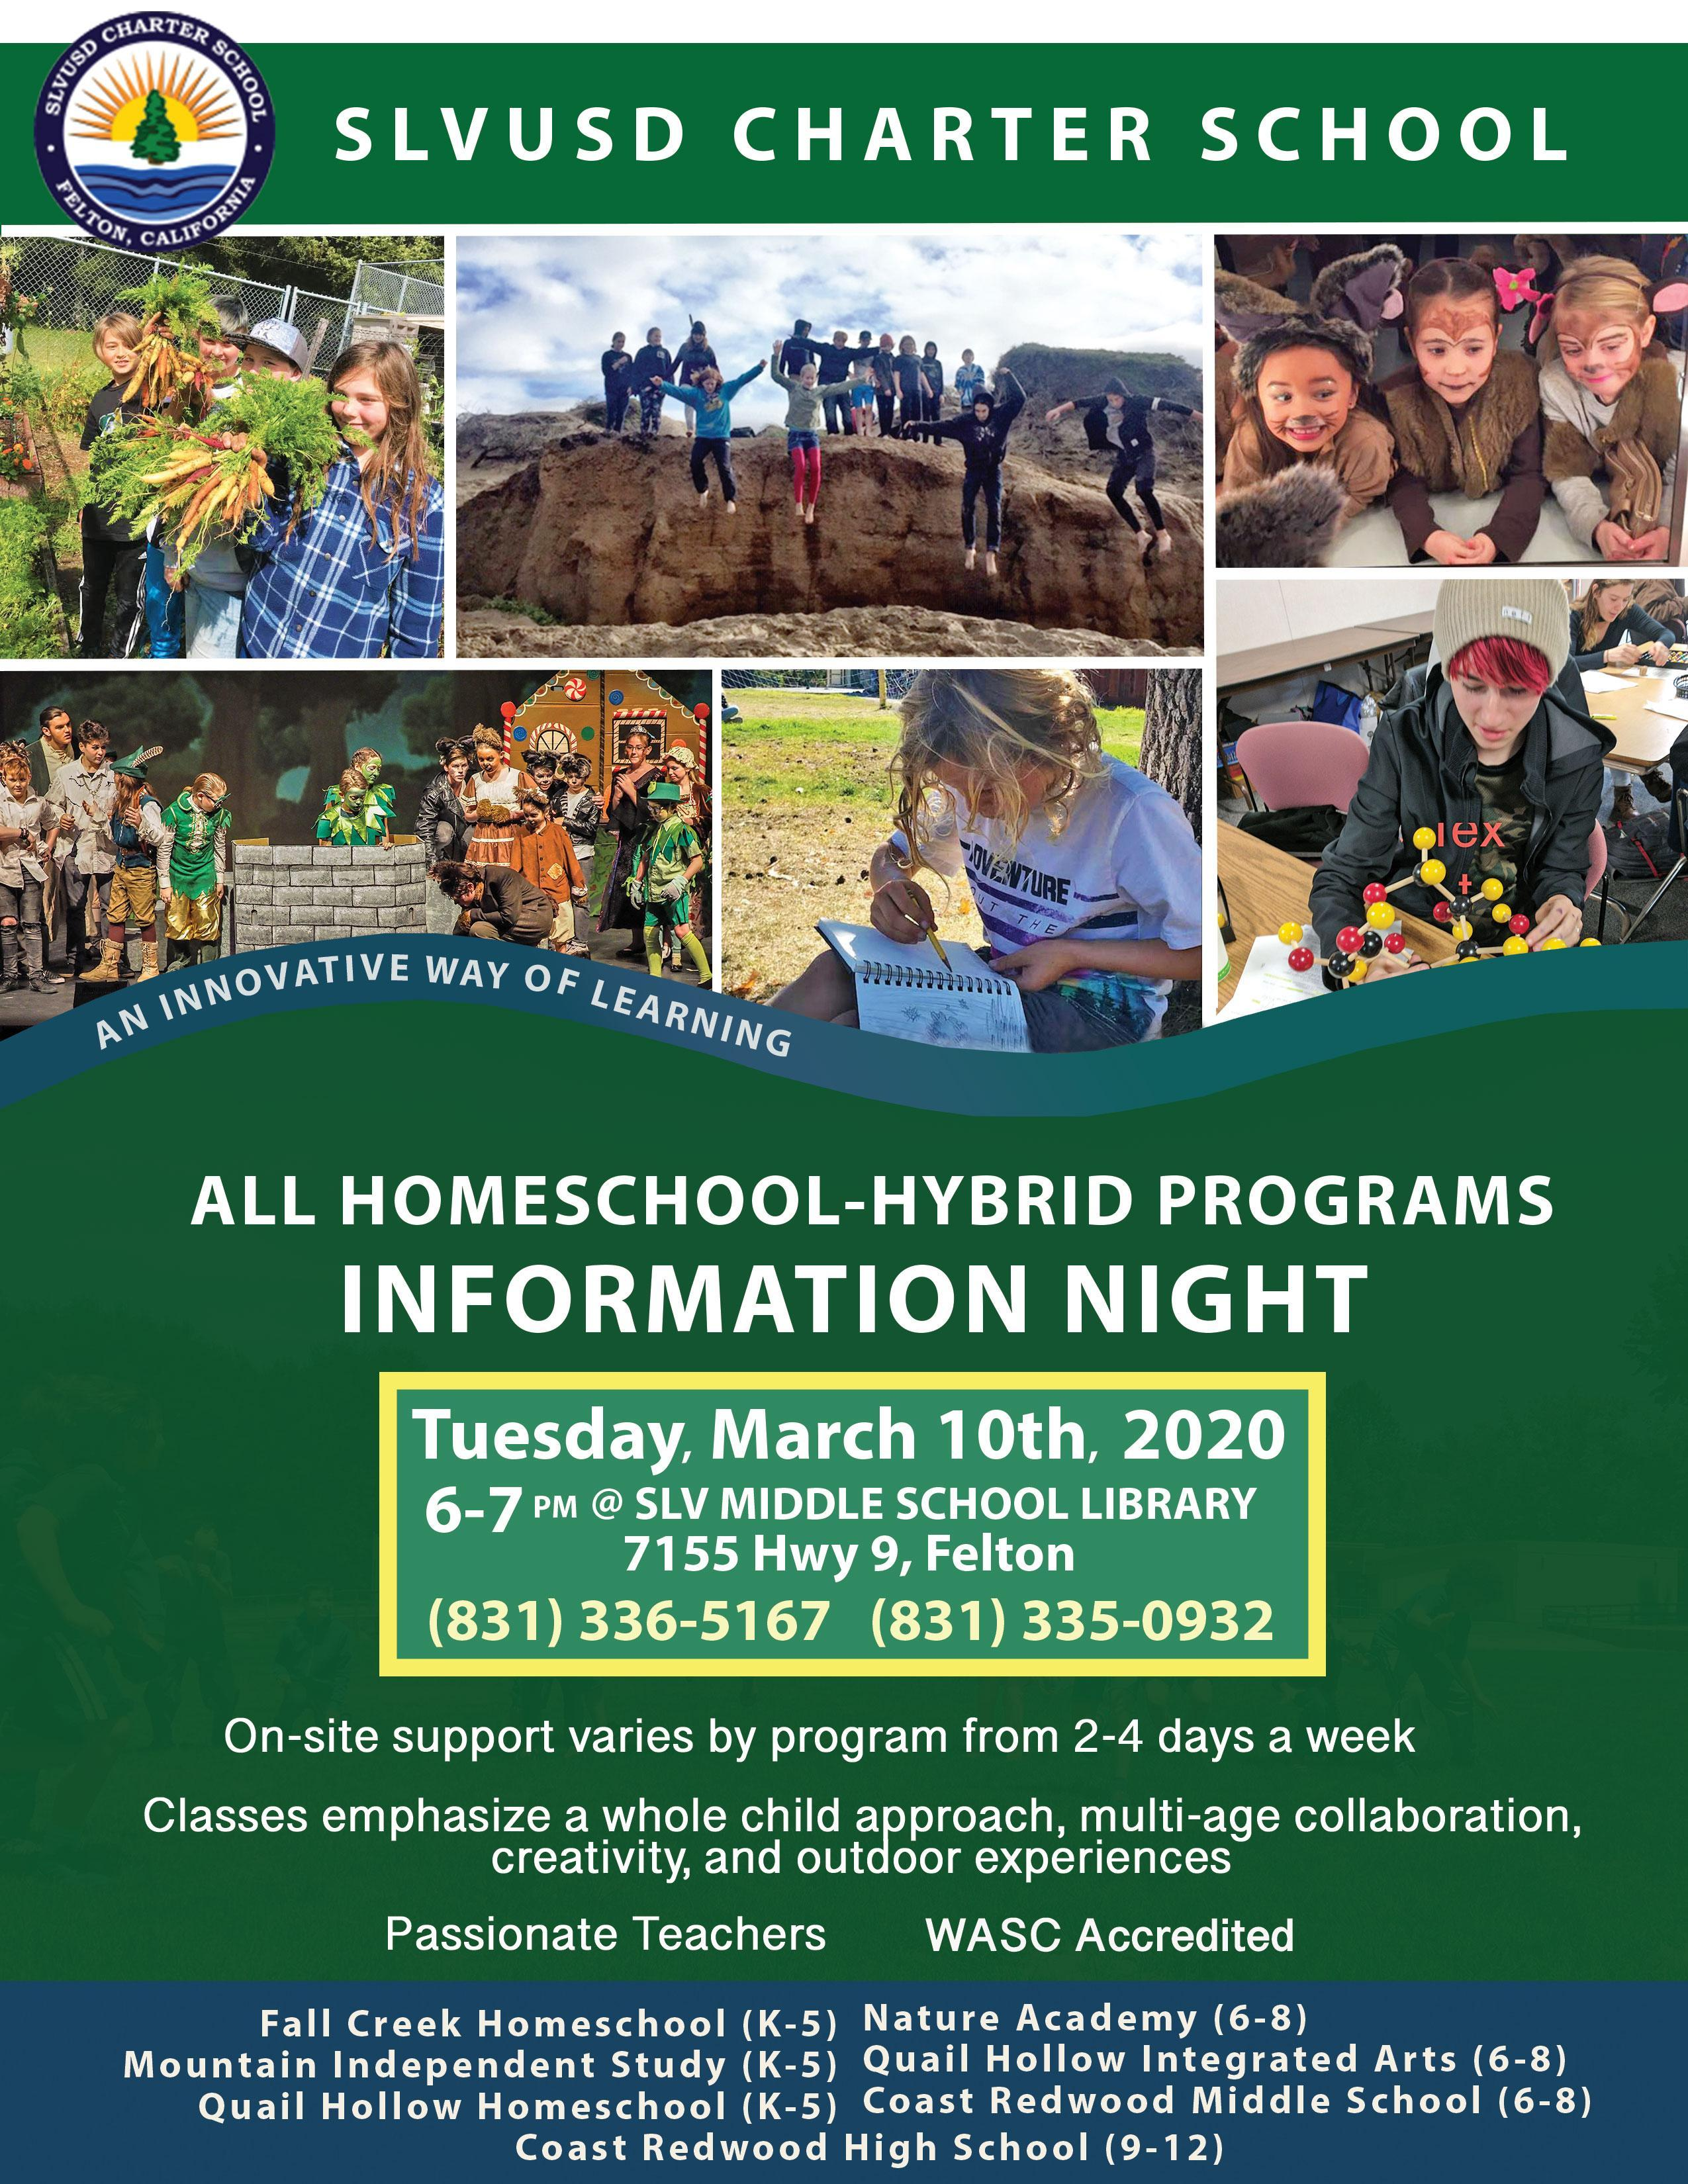 Homeschool Information Night